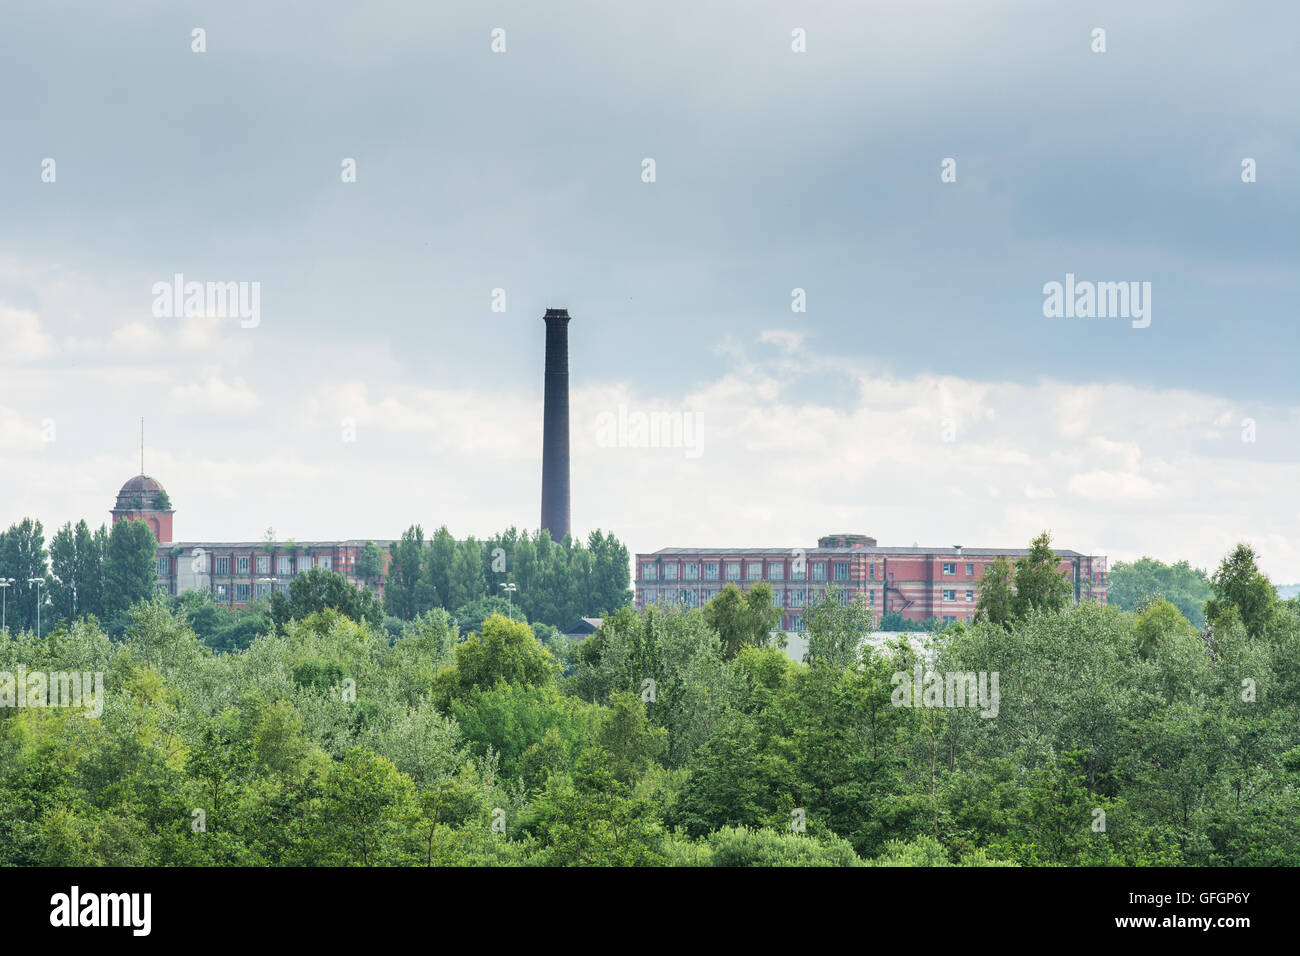 Lancashire cotton mills,Leigh - Stock Image